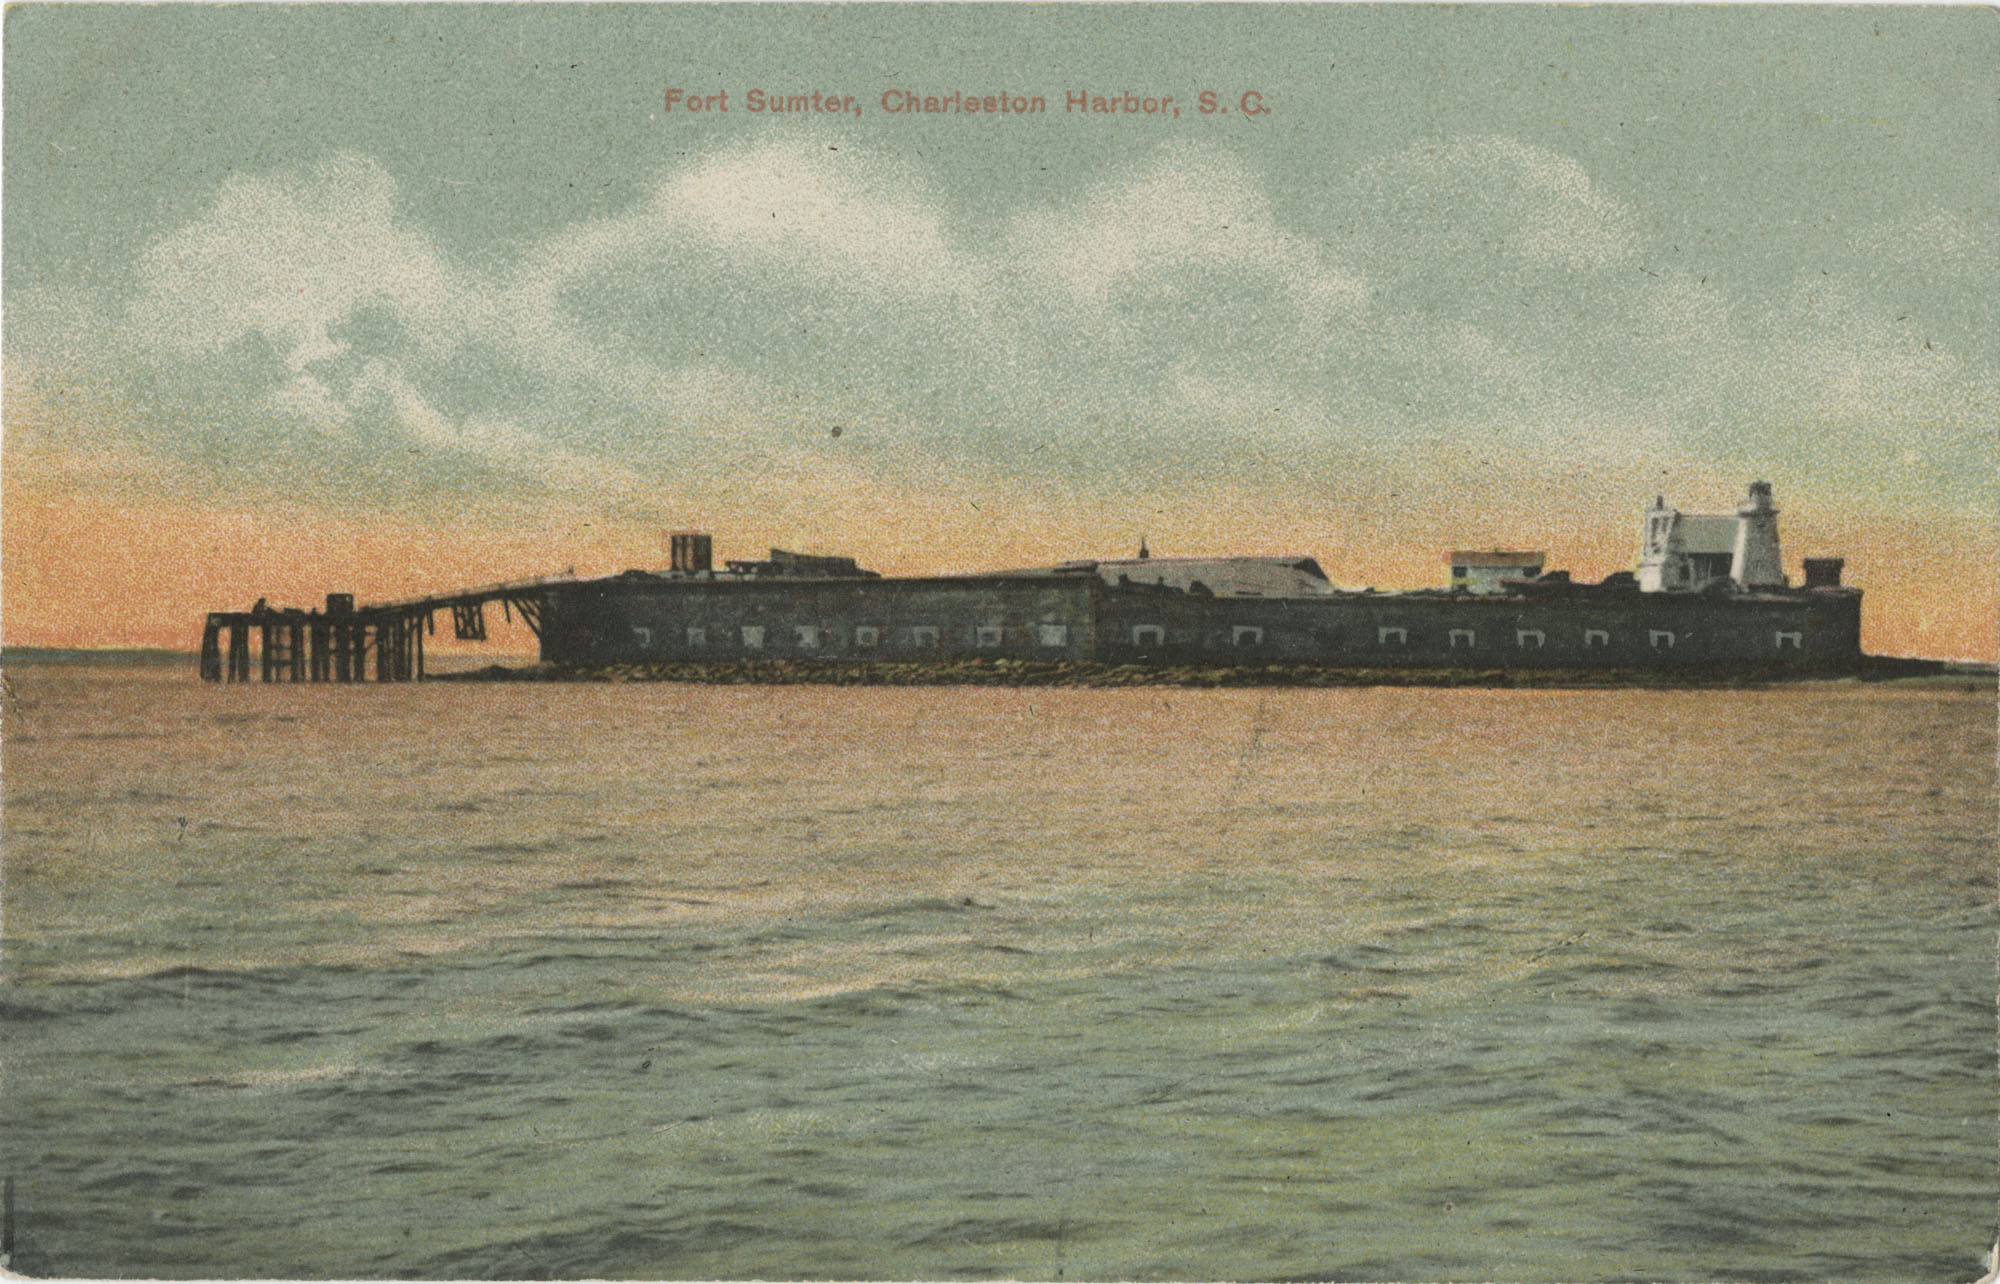 Fort Sumter, Charleston Harbor, S.C.